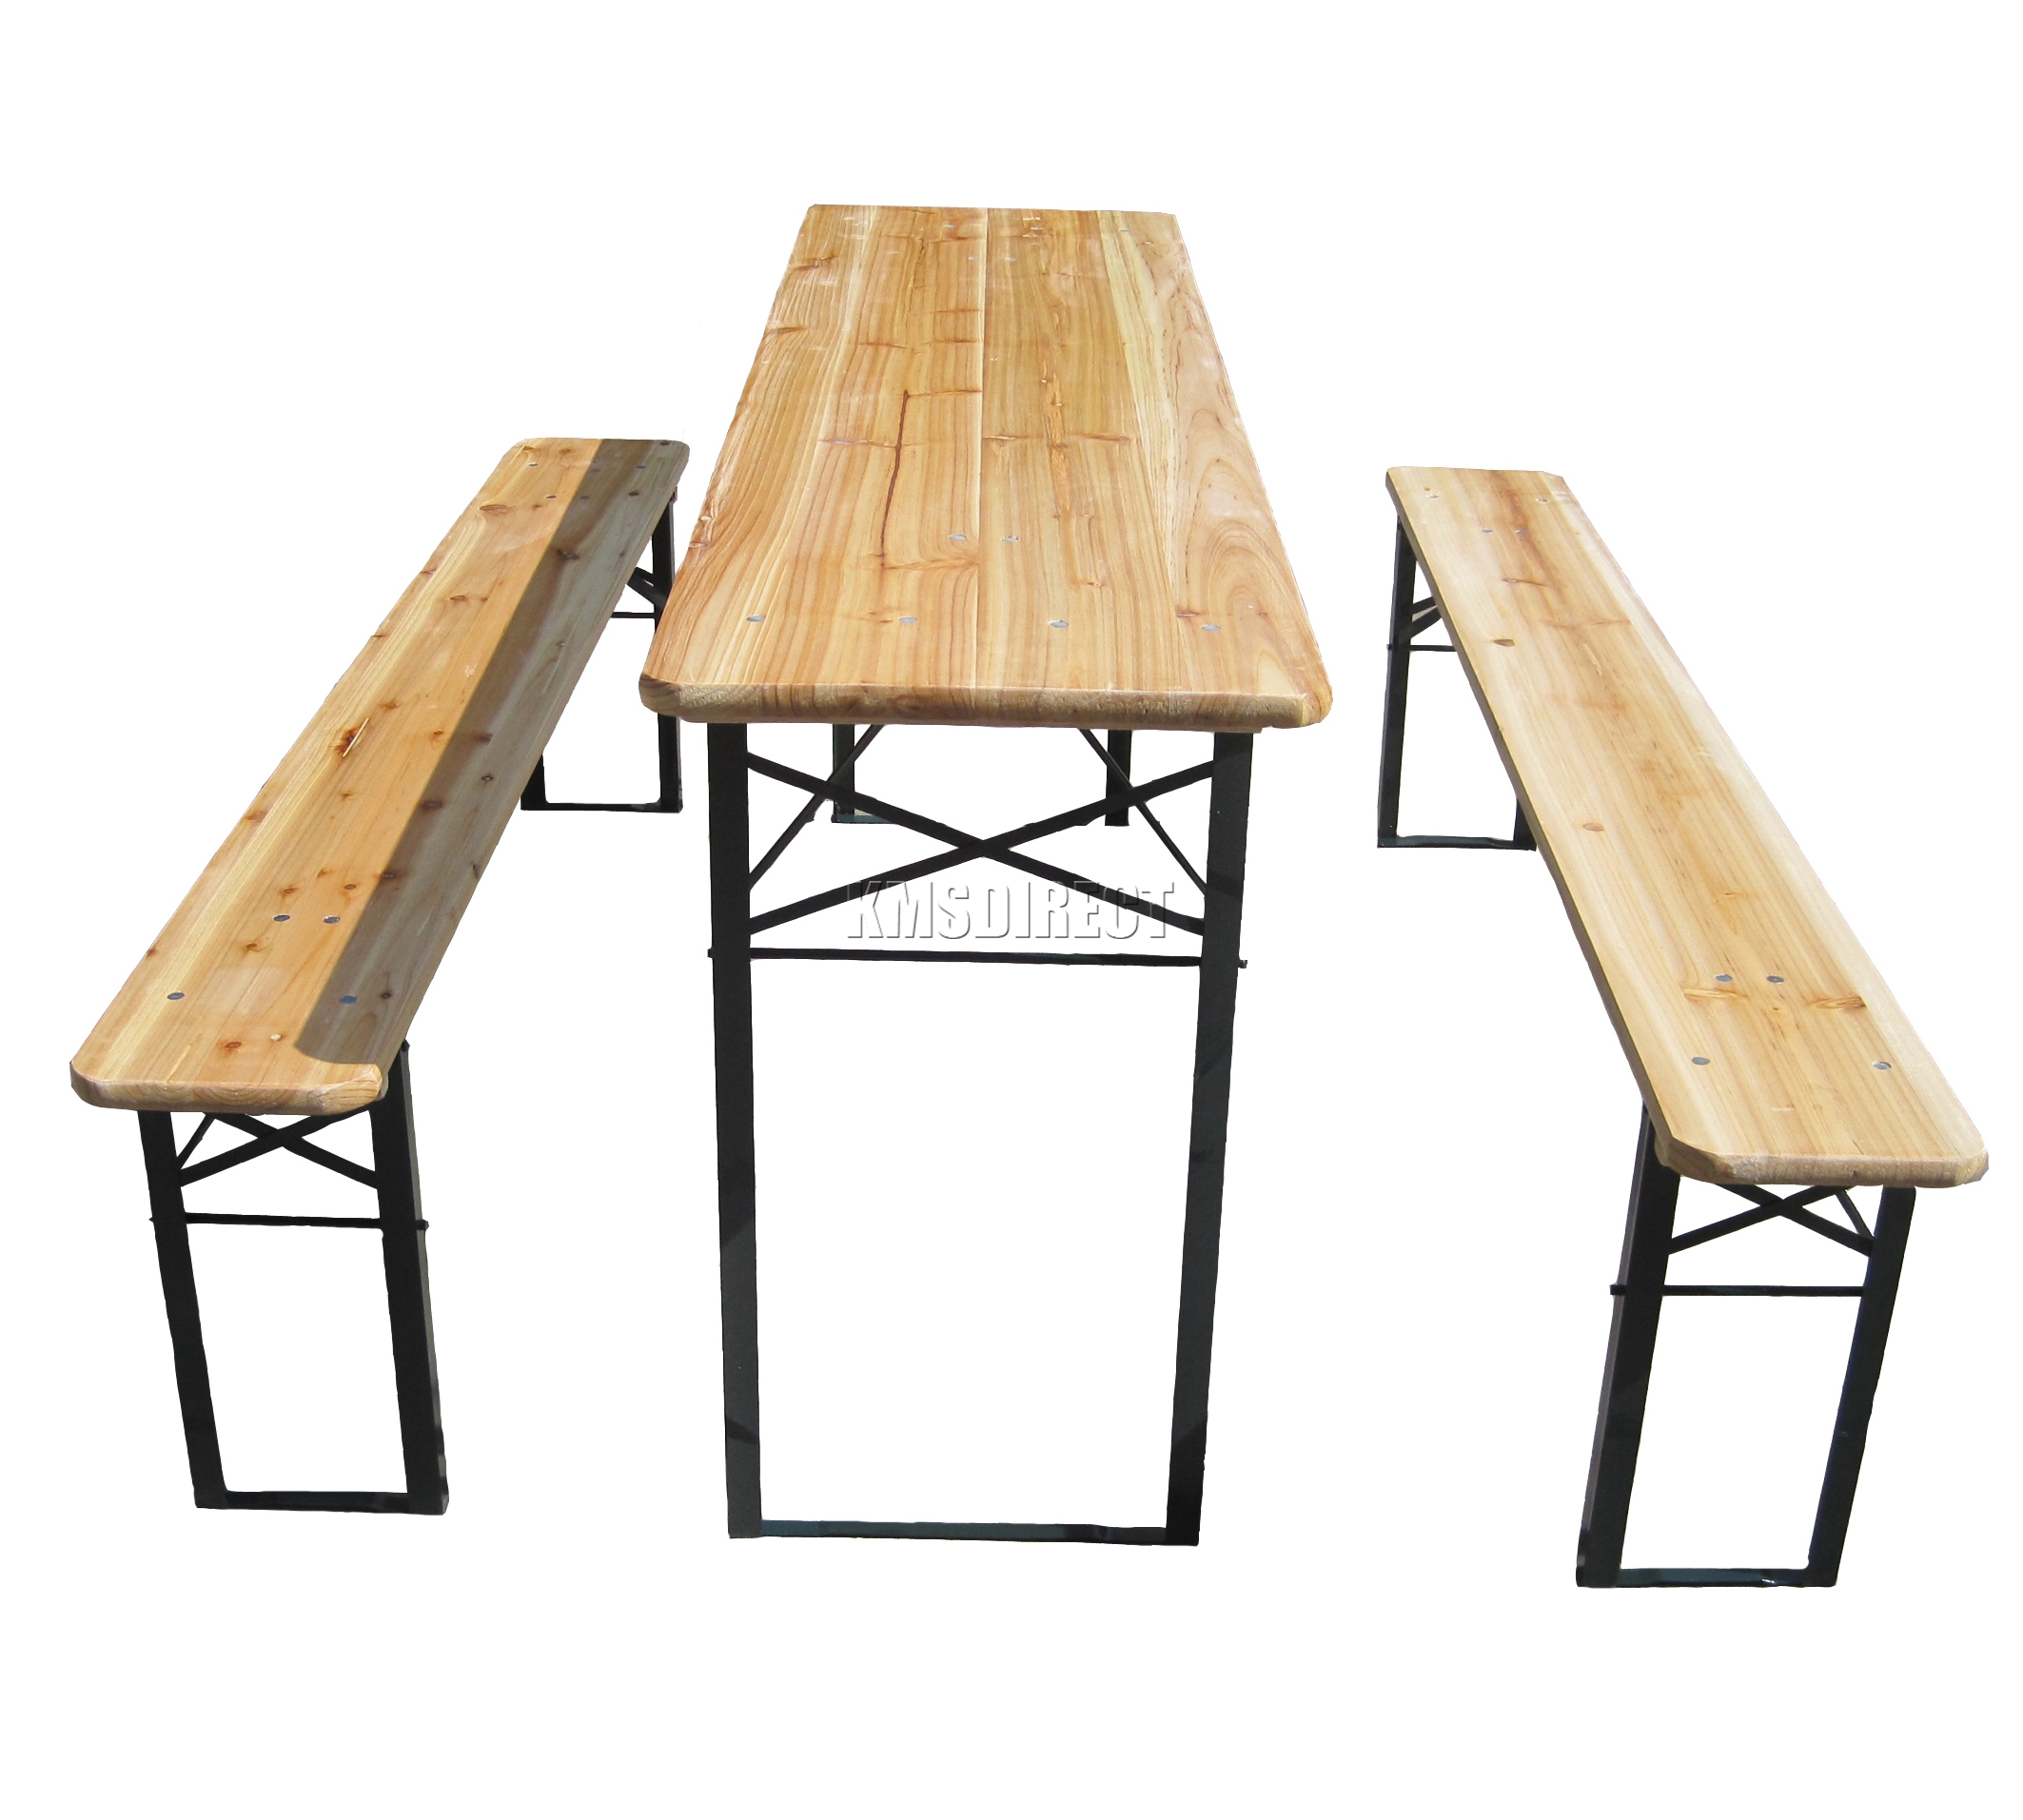 Wooden Folding Beer Table Bench Set Trestle Party Pub. Custom Executive Desks. Full Size Loft Bed With Desk And Storage. Dog Grooming Tables For Sale. Discount Pool Table Lights. Murphy Bed Desk Combination. Baileigh Plasma Table. White Wood Coffee Table. Kimball Desk Locks